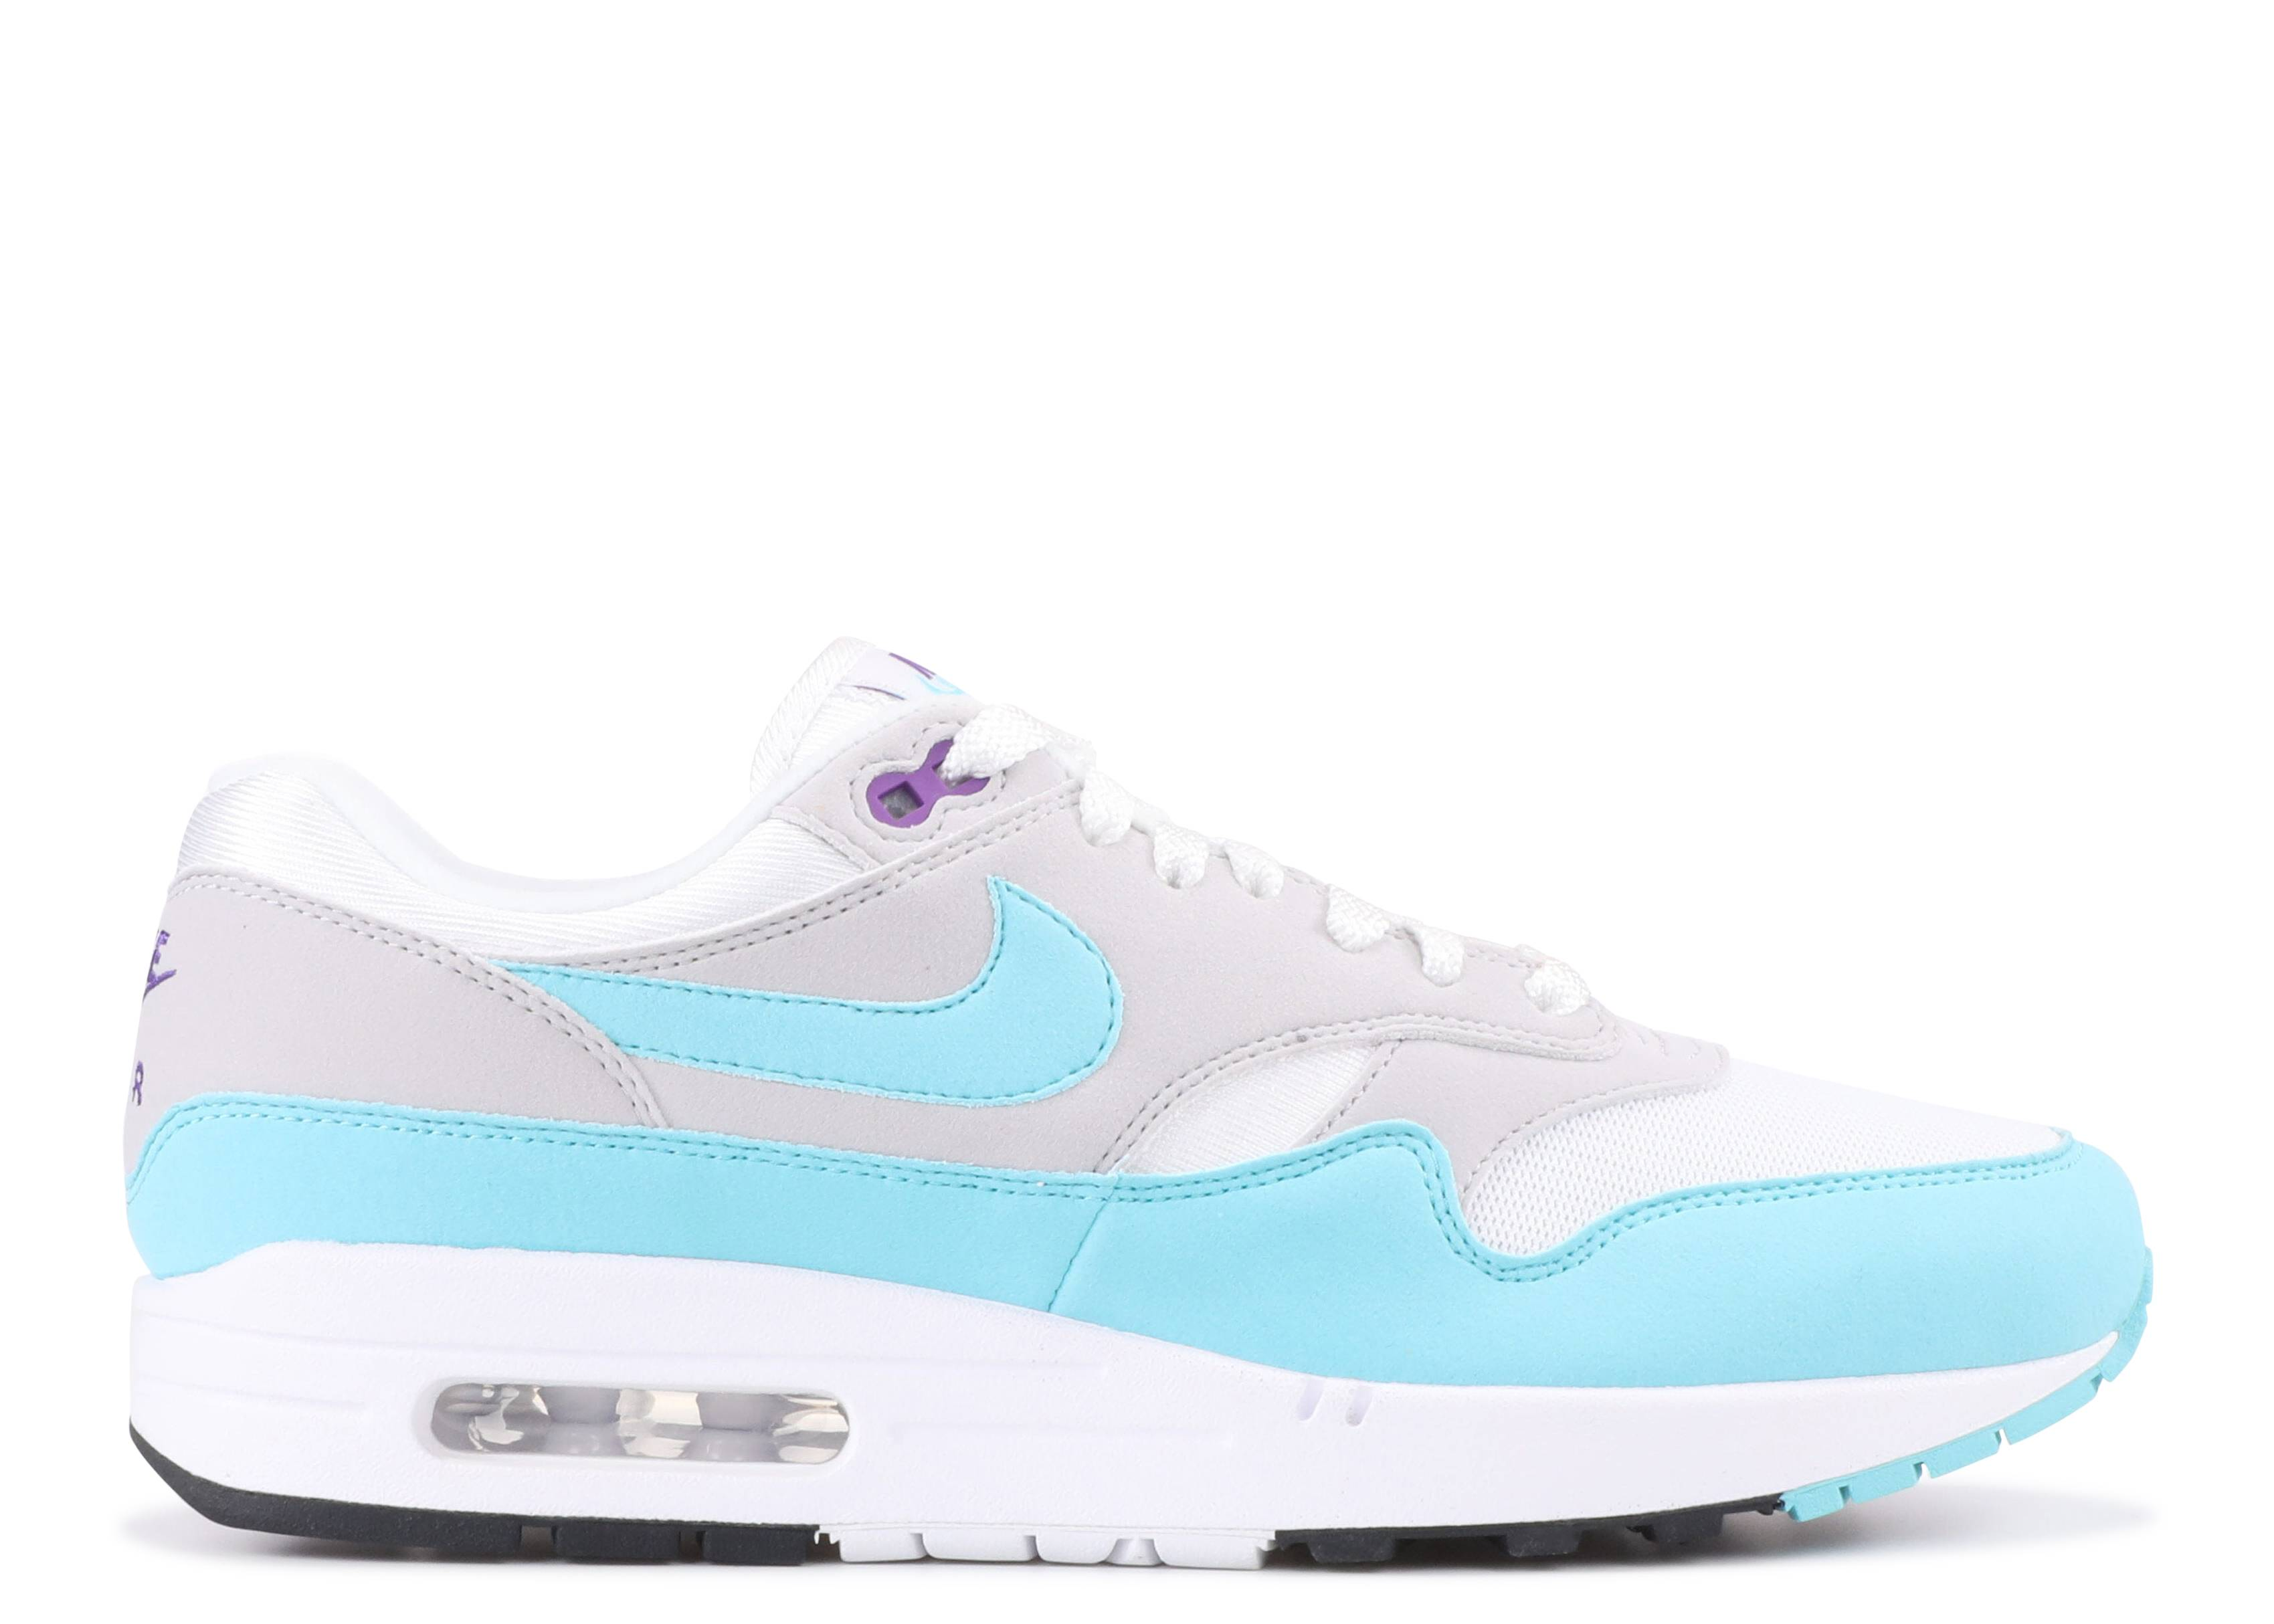 quality design cbb36 dae0e where to buy nike air max 1 og anniversary 503da d51d9  promo code for nike  air max 1 anniversary 6d1ad c64c7